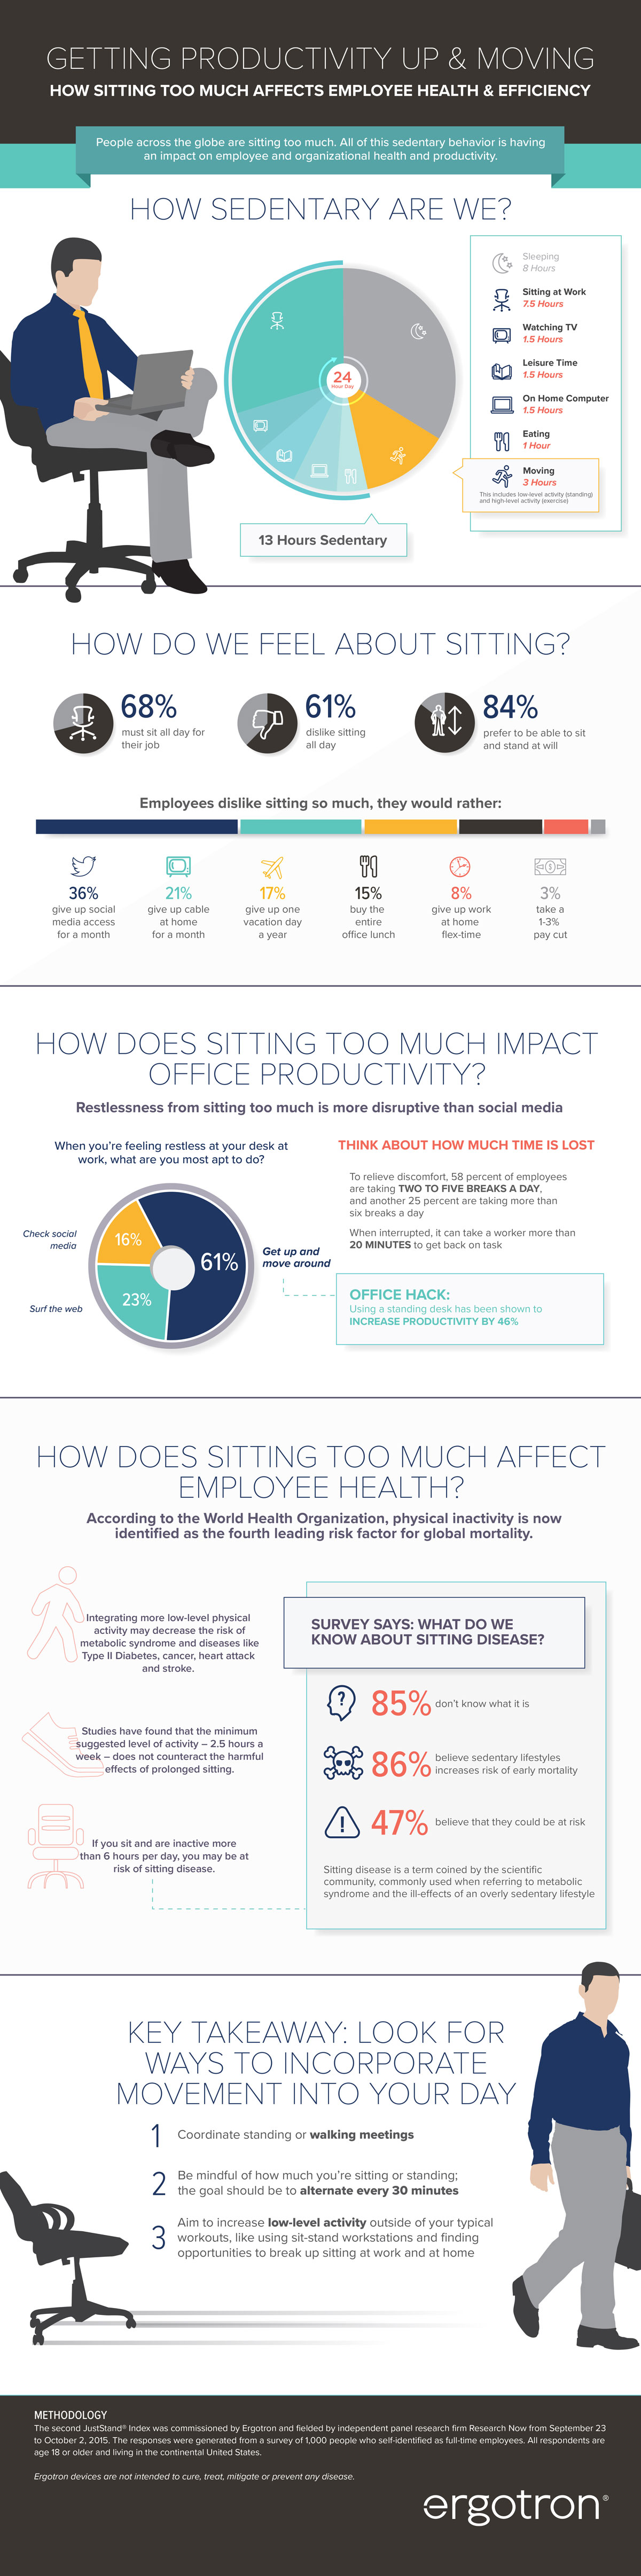 Getting Productivity Up & Moving